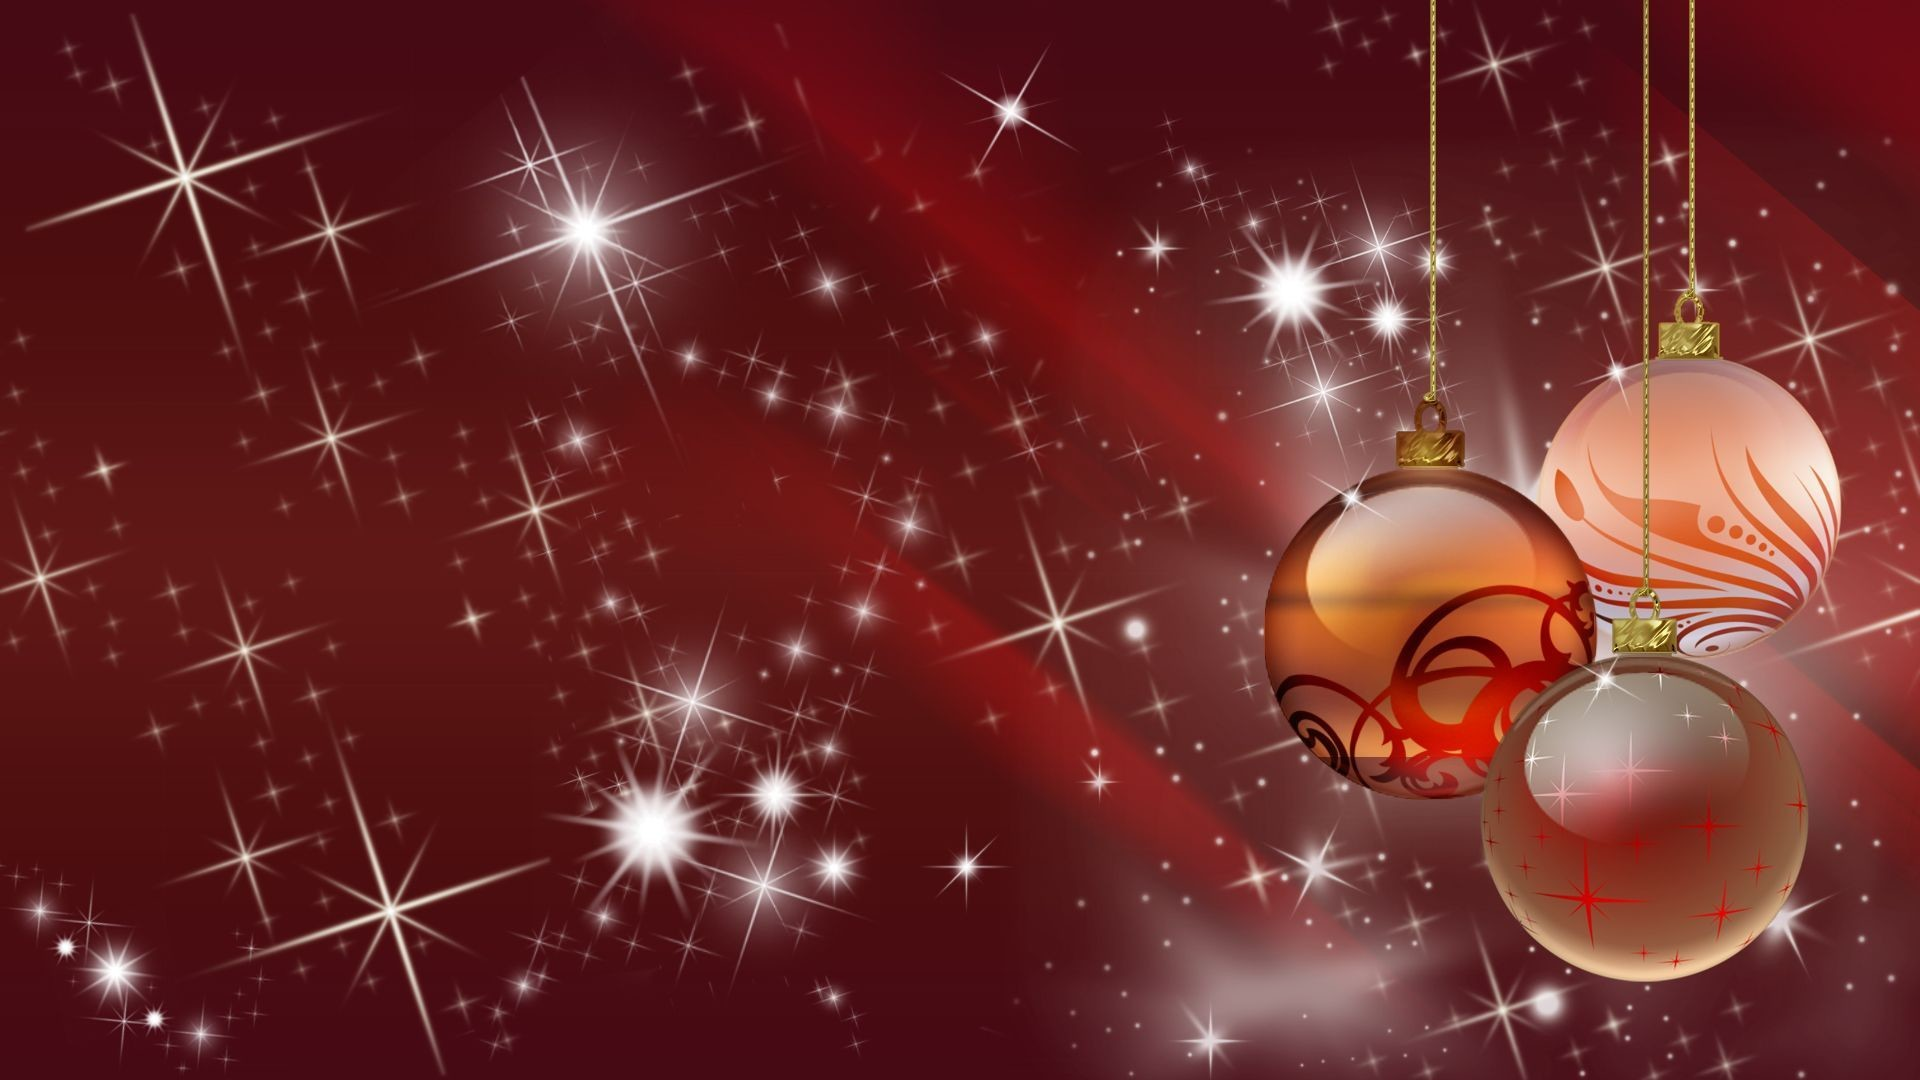 70 Christmas Background Wallpapers on WallpaperPlay 1920x1080